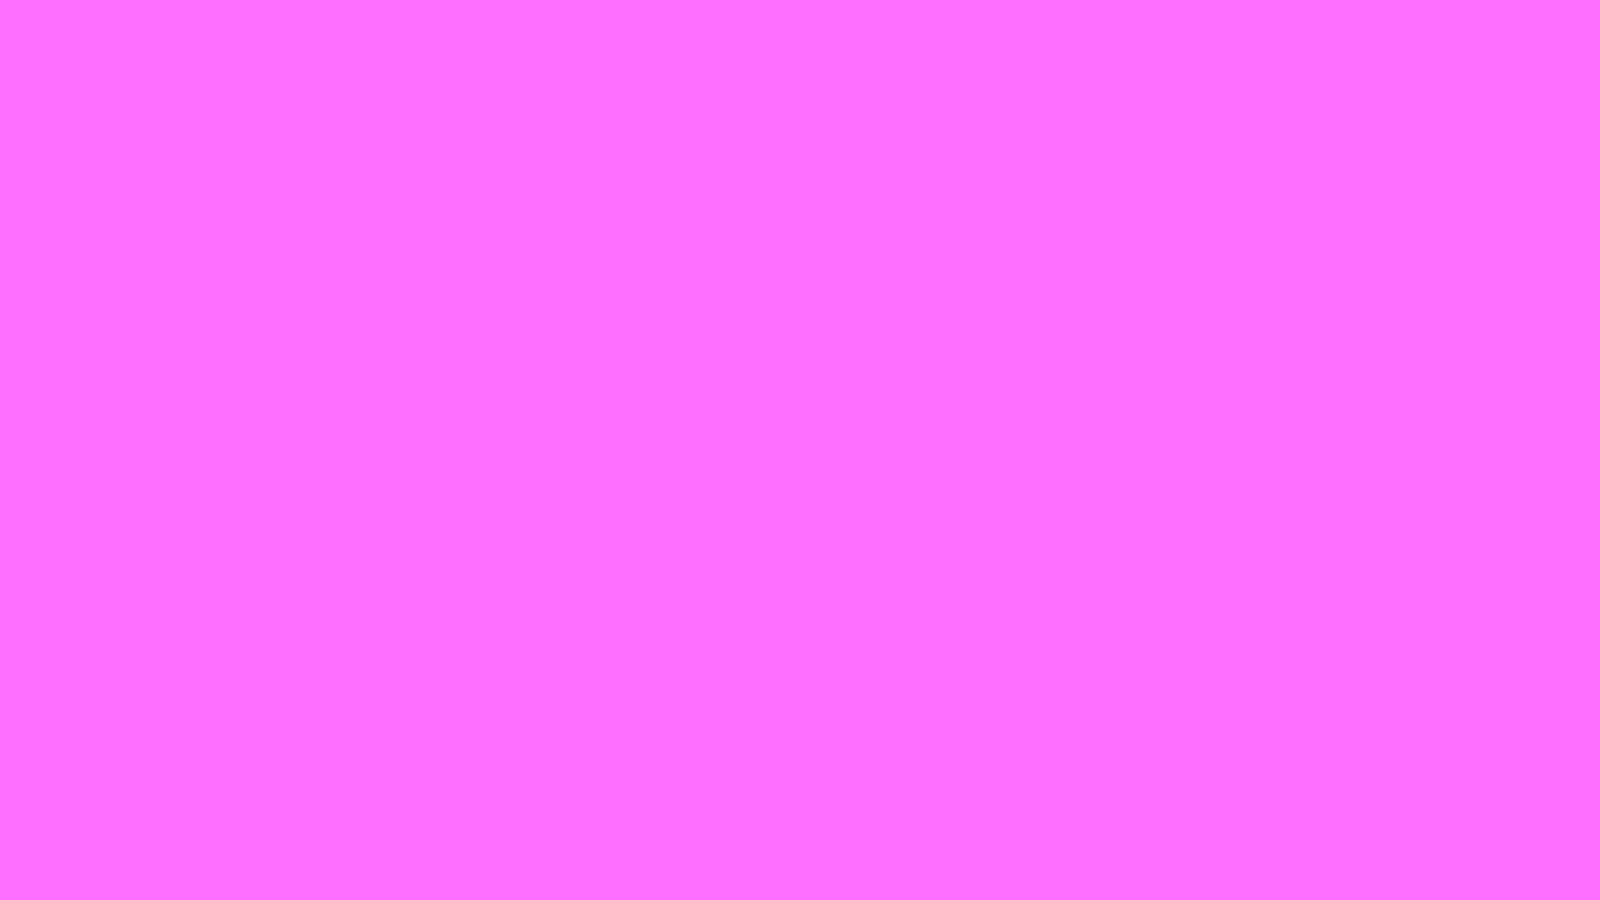 1600x900 Shocking Pink Crayola Solid Color Background